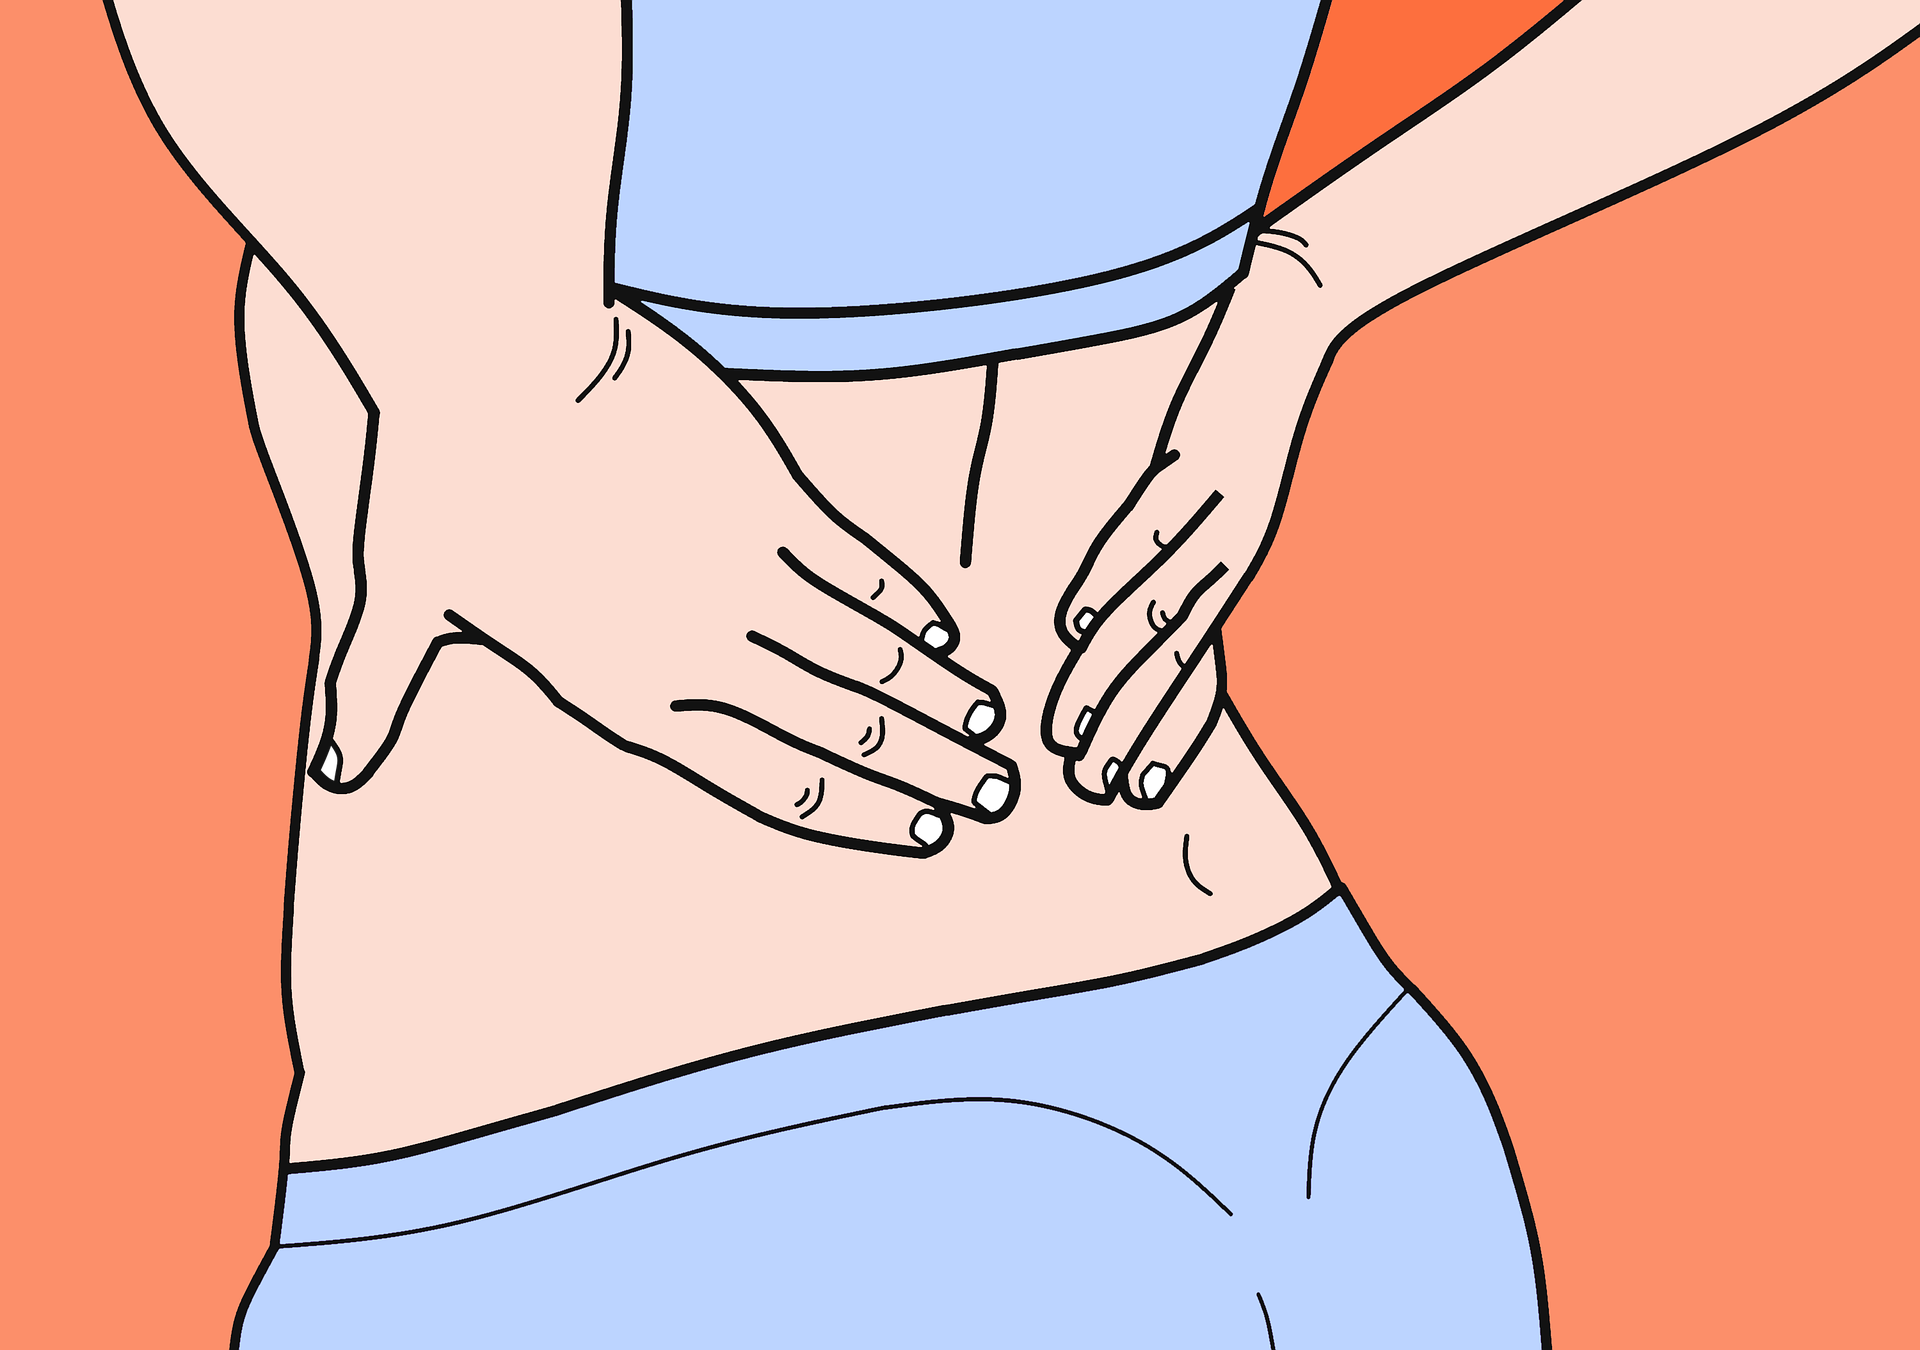 Weakening Of Bones as well as Neck And Back Pain